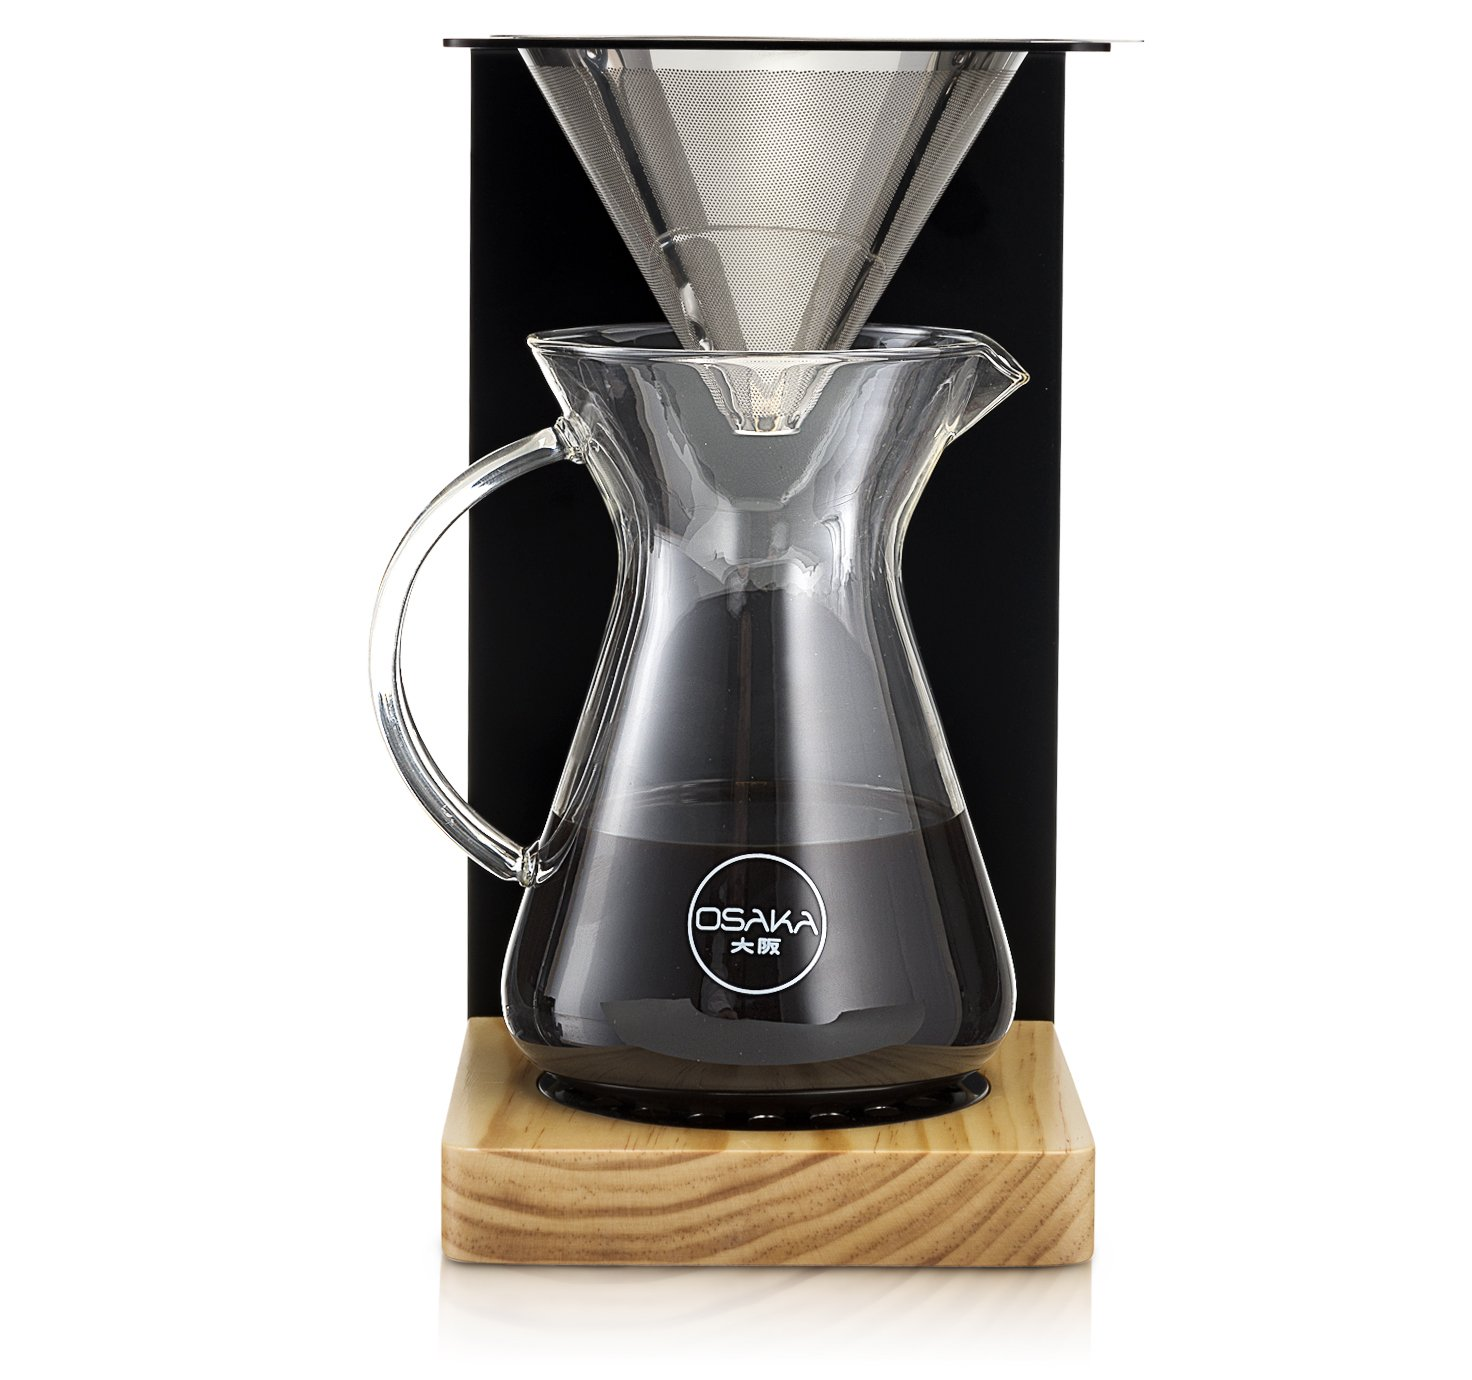 Osaka Wood Pour-Over Coffee Station - Full Brewing Set for a Homemade Pourover - 20oz. Capacity.''Mount Zao''